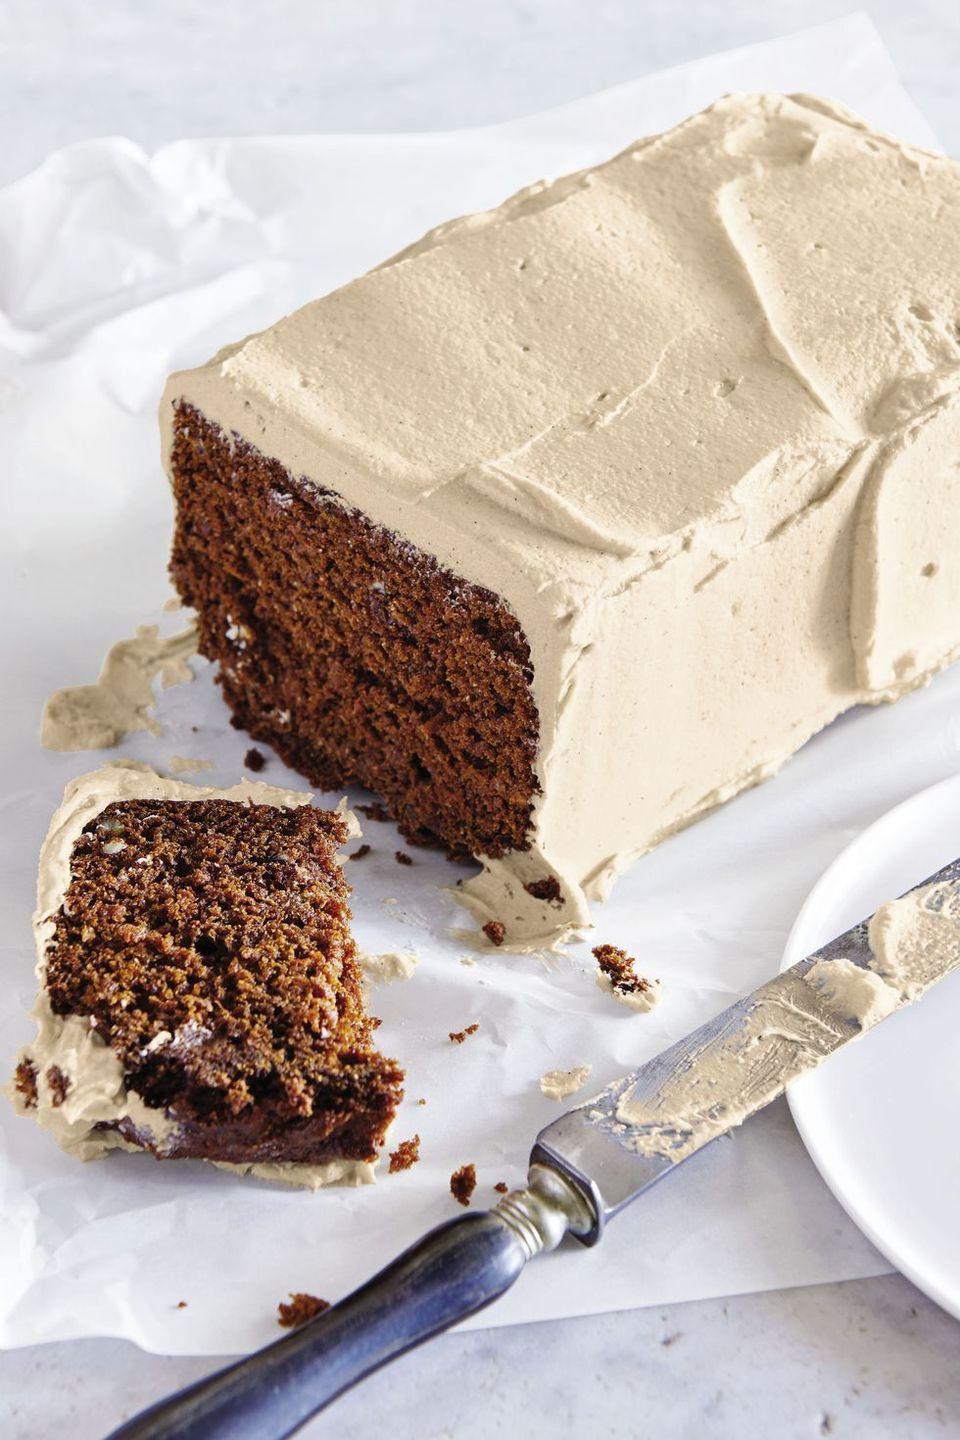 "<p>This carrot cake breaks all the rules with whole-wheat flour in the batter and brown sugar in the frosting. If it's wrong, we don't want to be right.</p><p><em><a href=""https://www.goodhousekeeping.com/food-recipes/dessert/a40367/outlaw-carrot-cake-with-brown-sugar-butter-cream-recipe/"" rel=""nofollow noopener"" target=""_blank"" data-ylk=""slk:Get the recipe for Outlaw Carrot Cake with Brown Sugar Butter Cream »"" class=""link rapid-noclick-resp"">Get the recipe for Outlaw Carrot Cake with Brown Sugar Butter Cream »</a></em></p>"